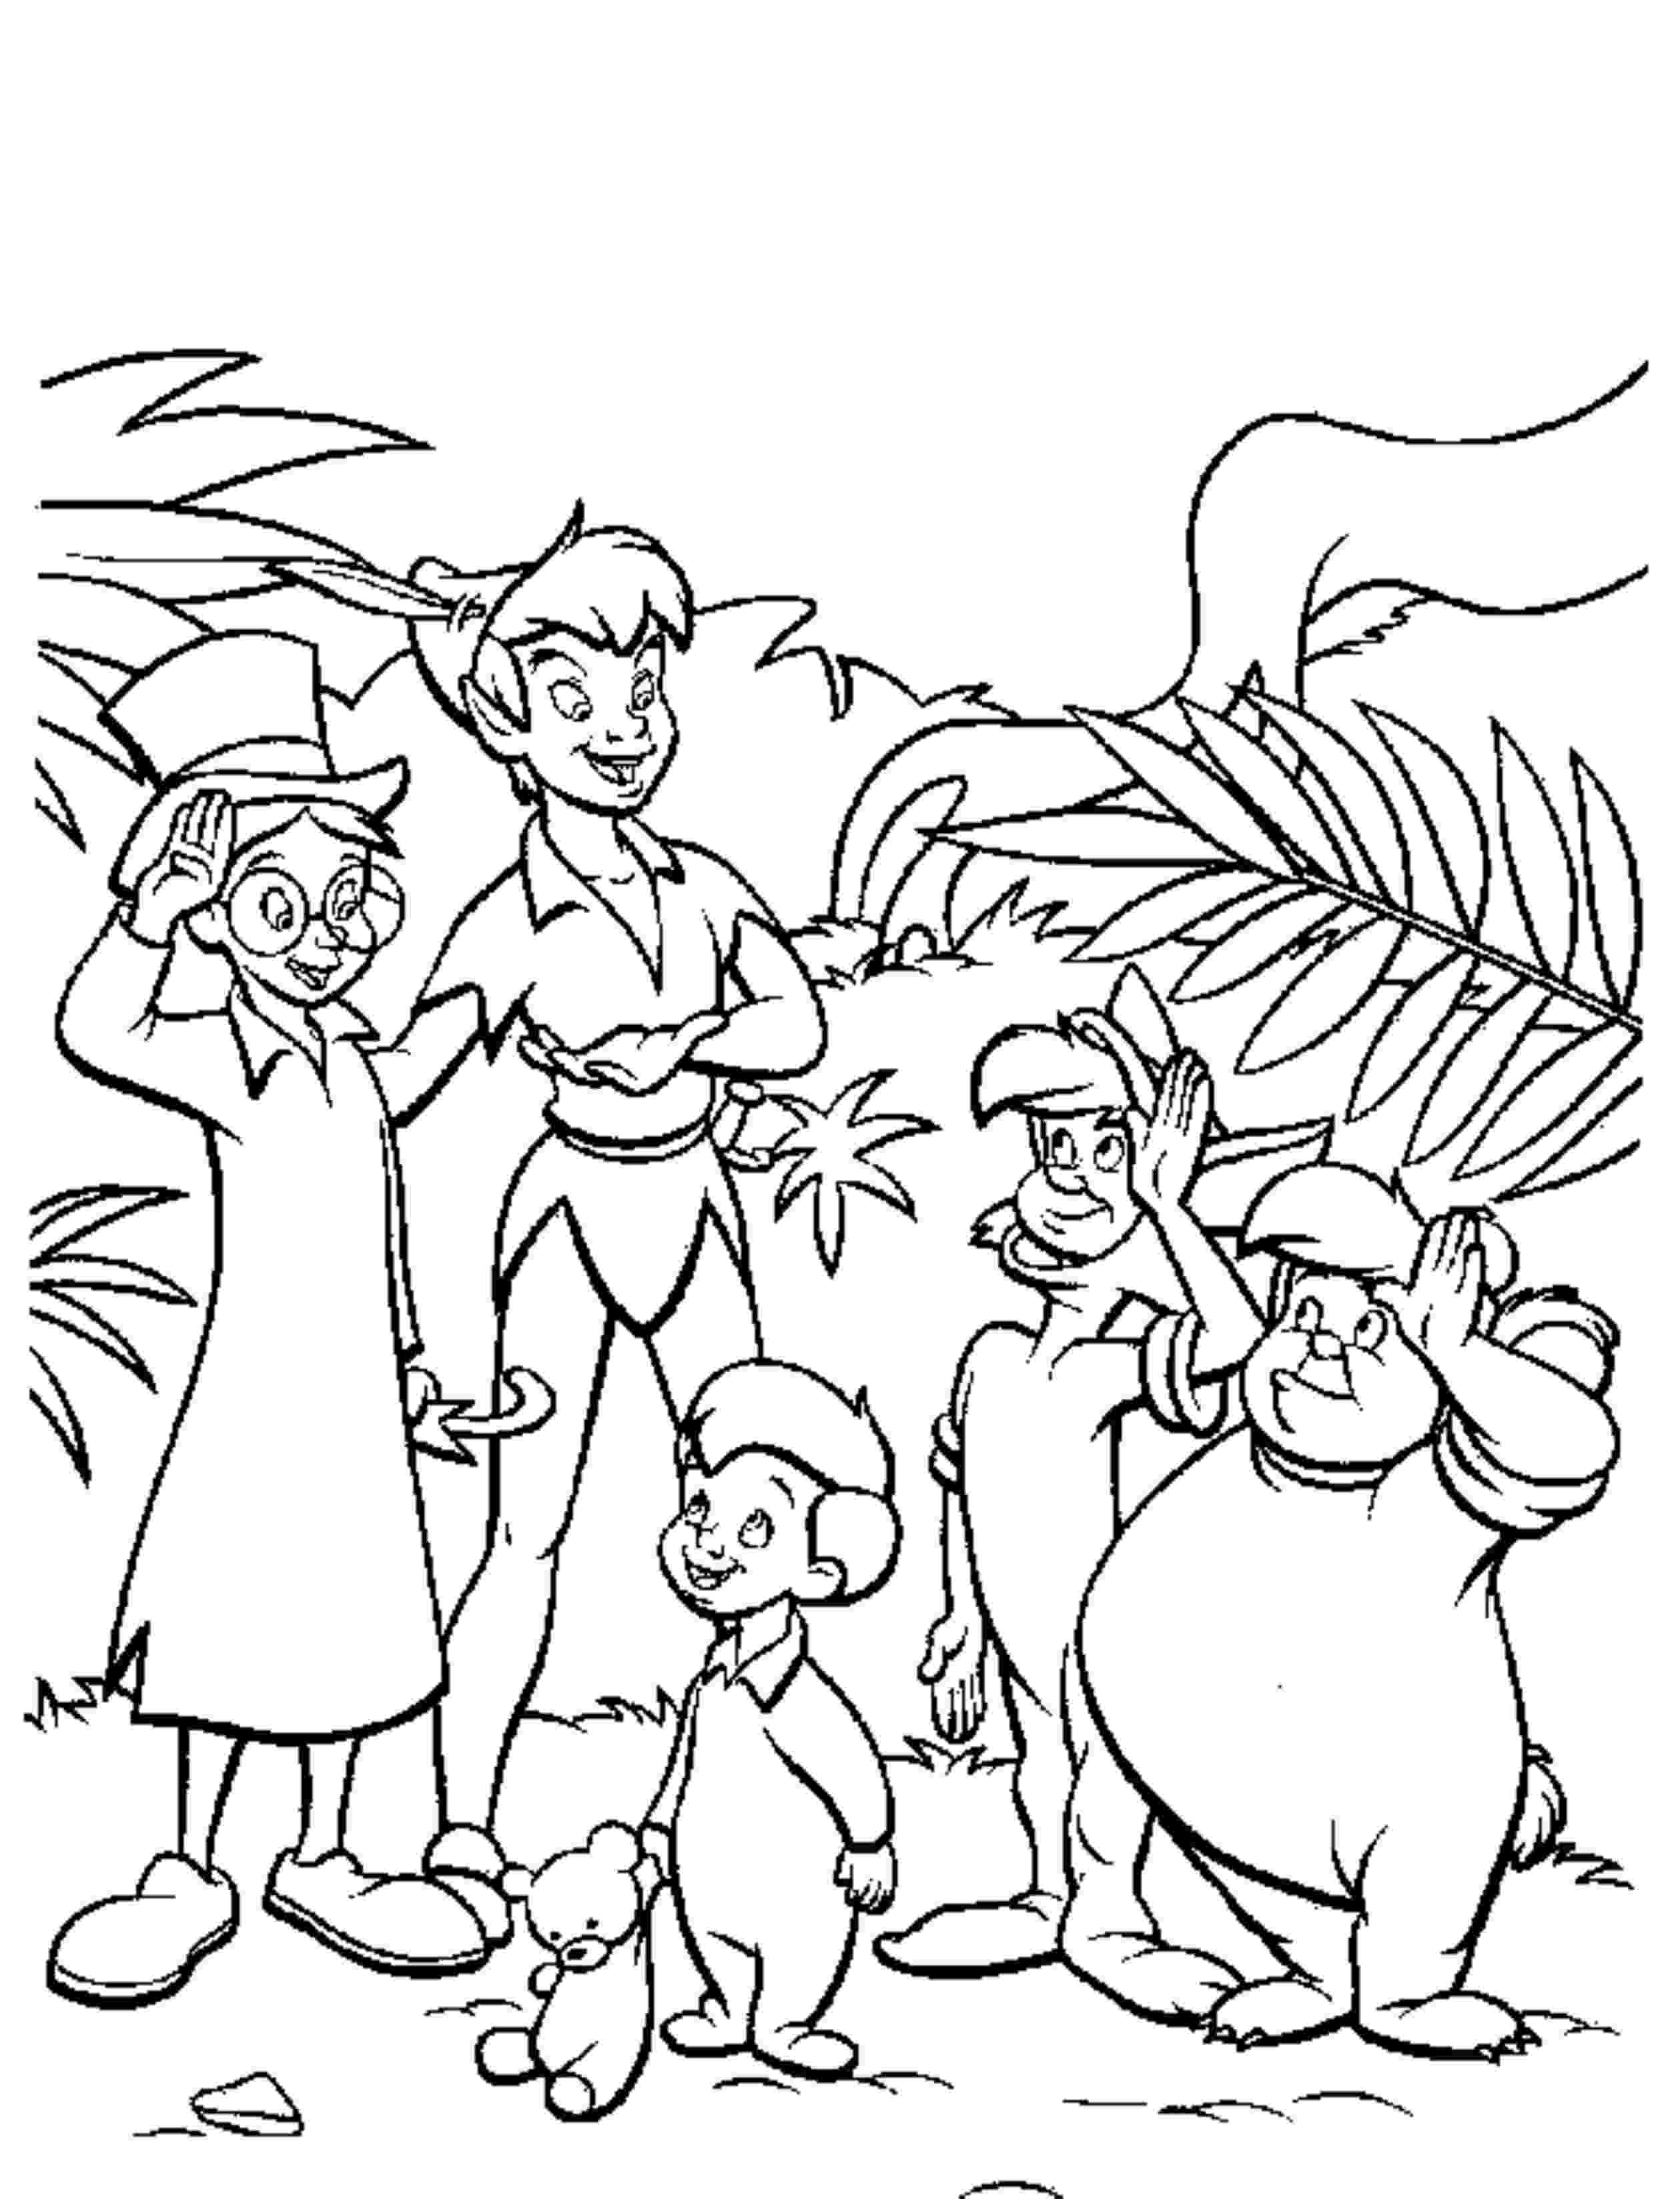 peter pan color peter pan coloring pages learn to coloring color pan peter